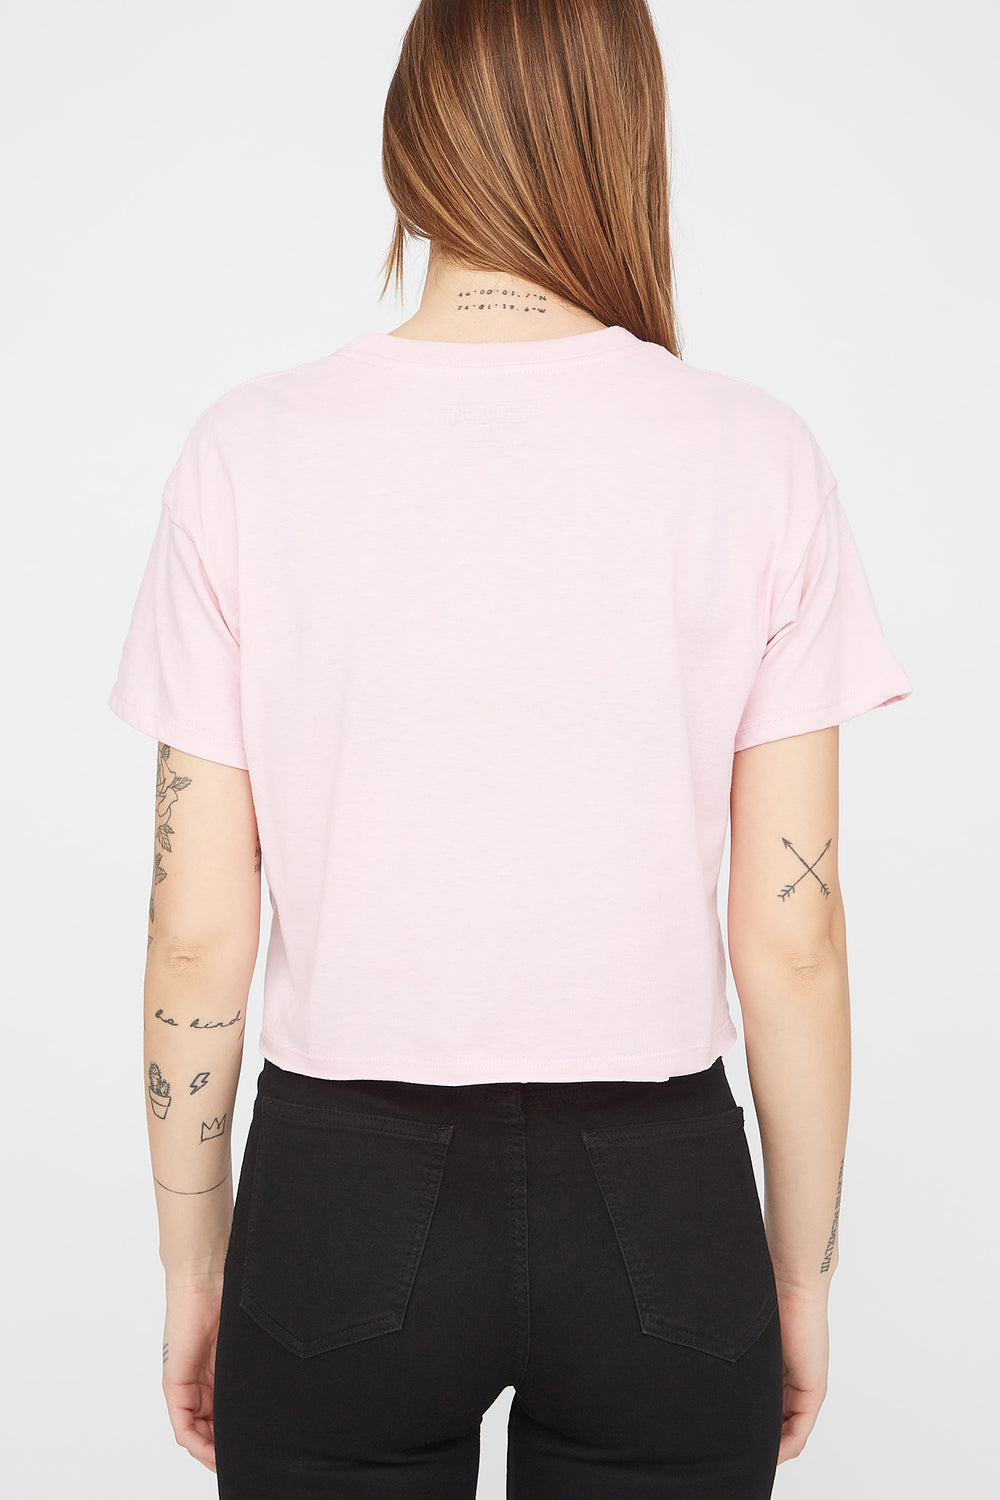 Zoo York Womens Unbreakable Chenille Cropped T-Shirt Light Pink